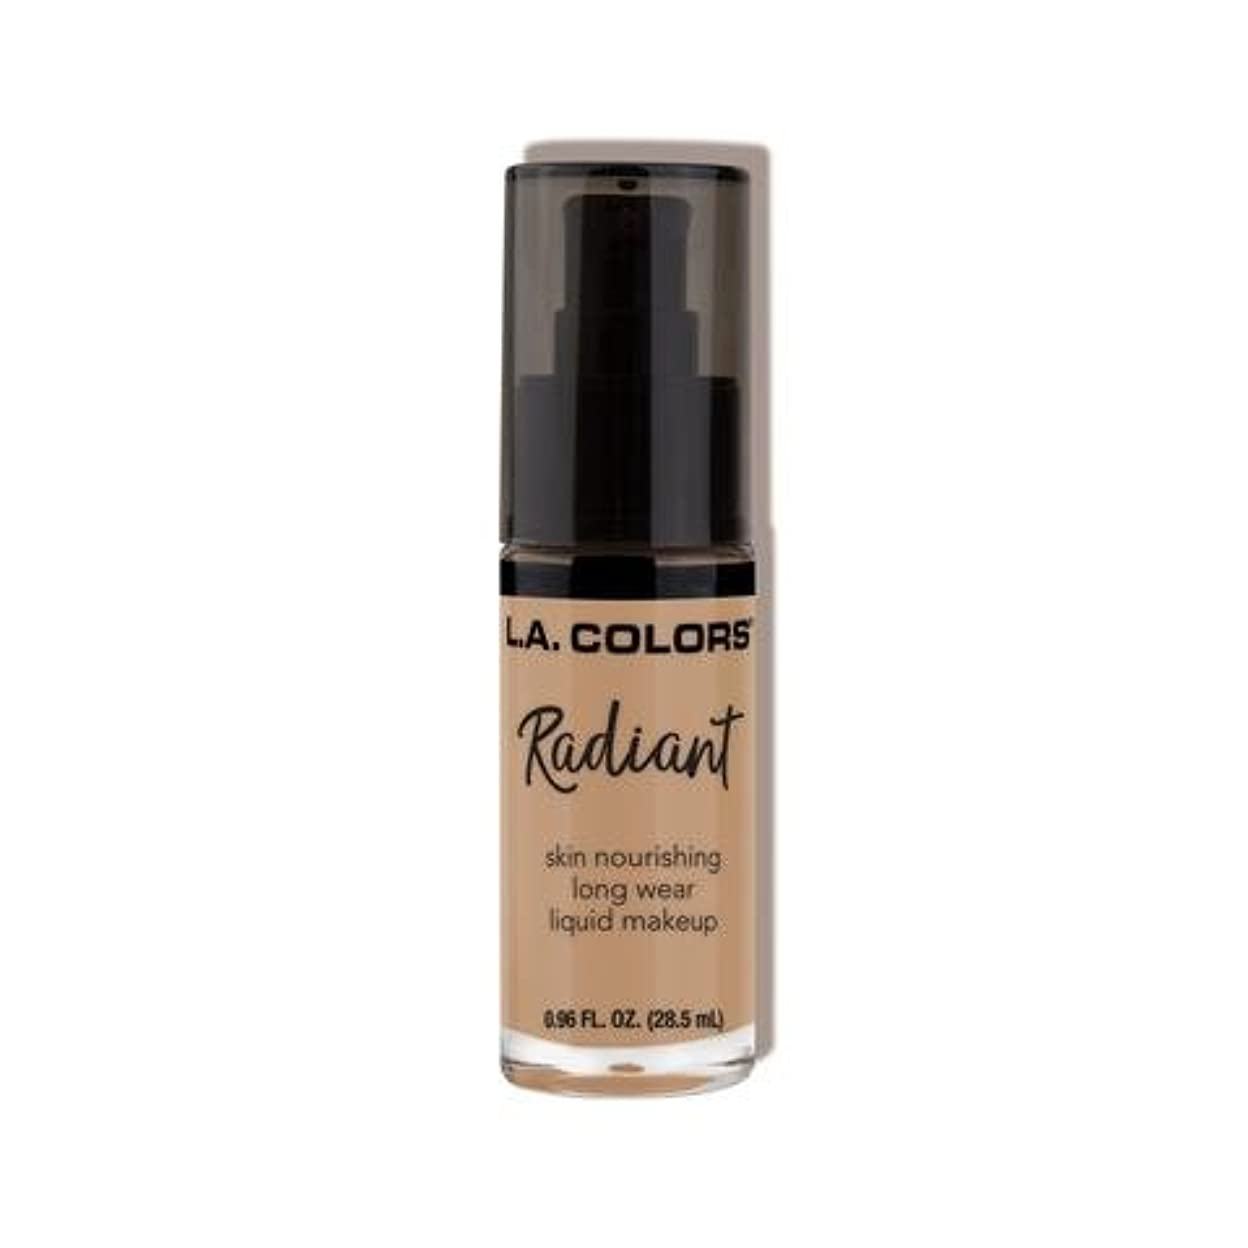 雇った分布に変わる(6 Pack) L.A. COLORS Radiant Liquid Makeup - Medium Beige (並行輸入品)